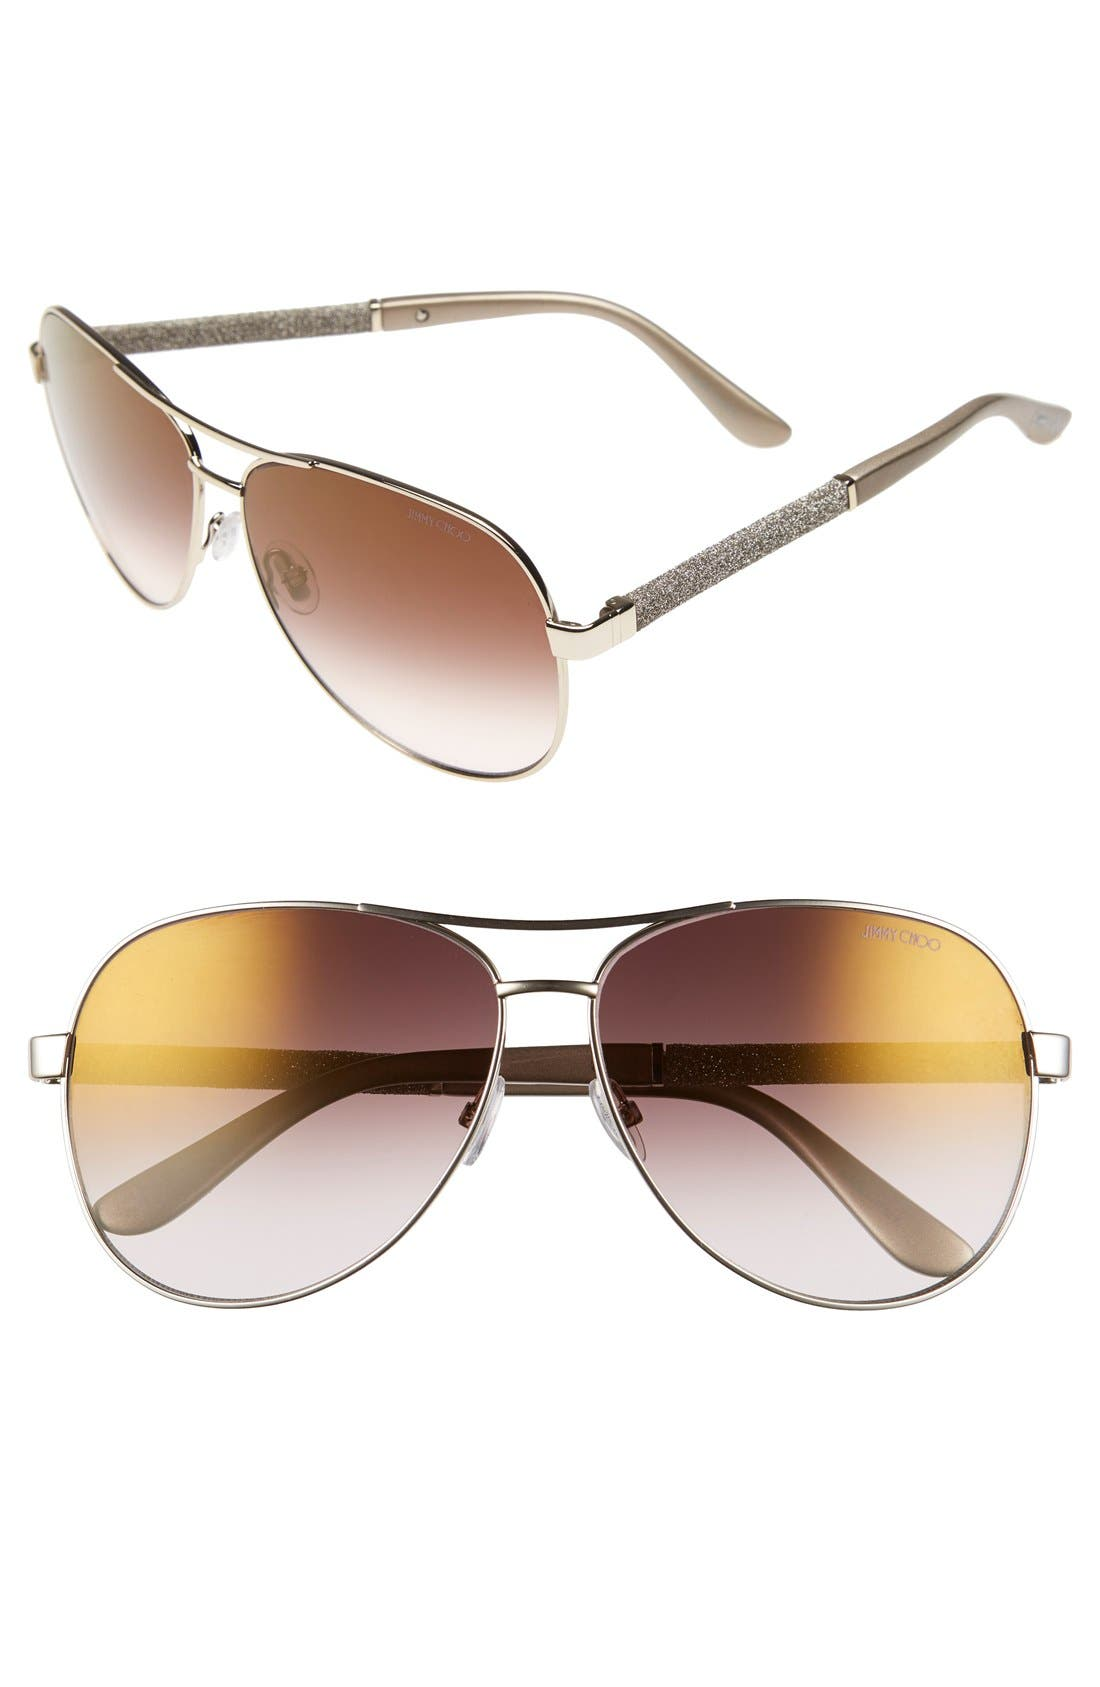 'LEXIE' 61MM AVIATOR SUNGLASSES - LIGHT GOLD